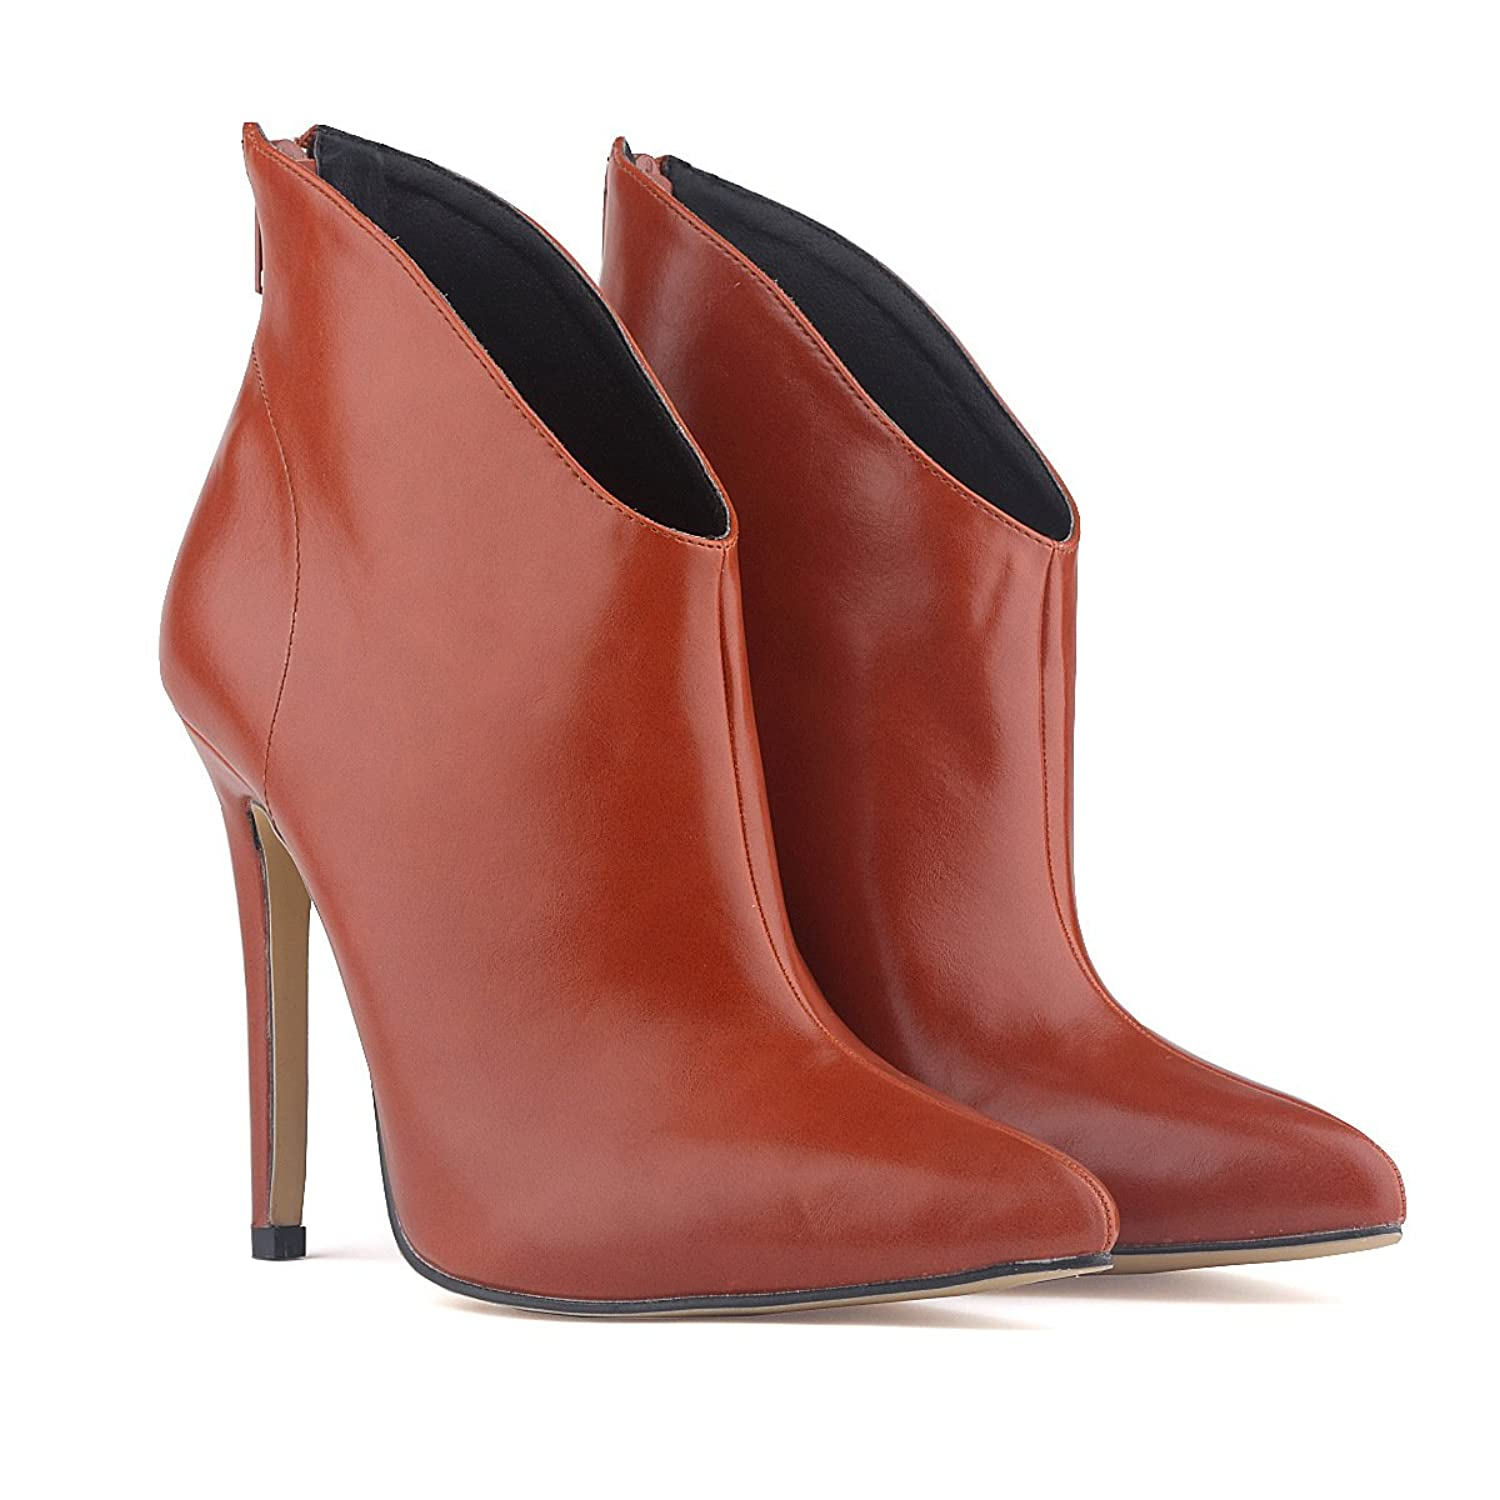 YH Women's Pointy Ankle High Boots Stiletto Shoes High Heels